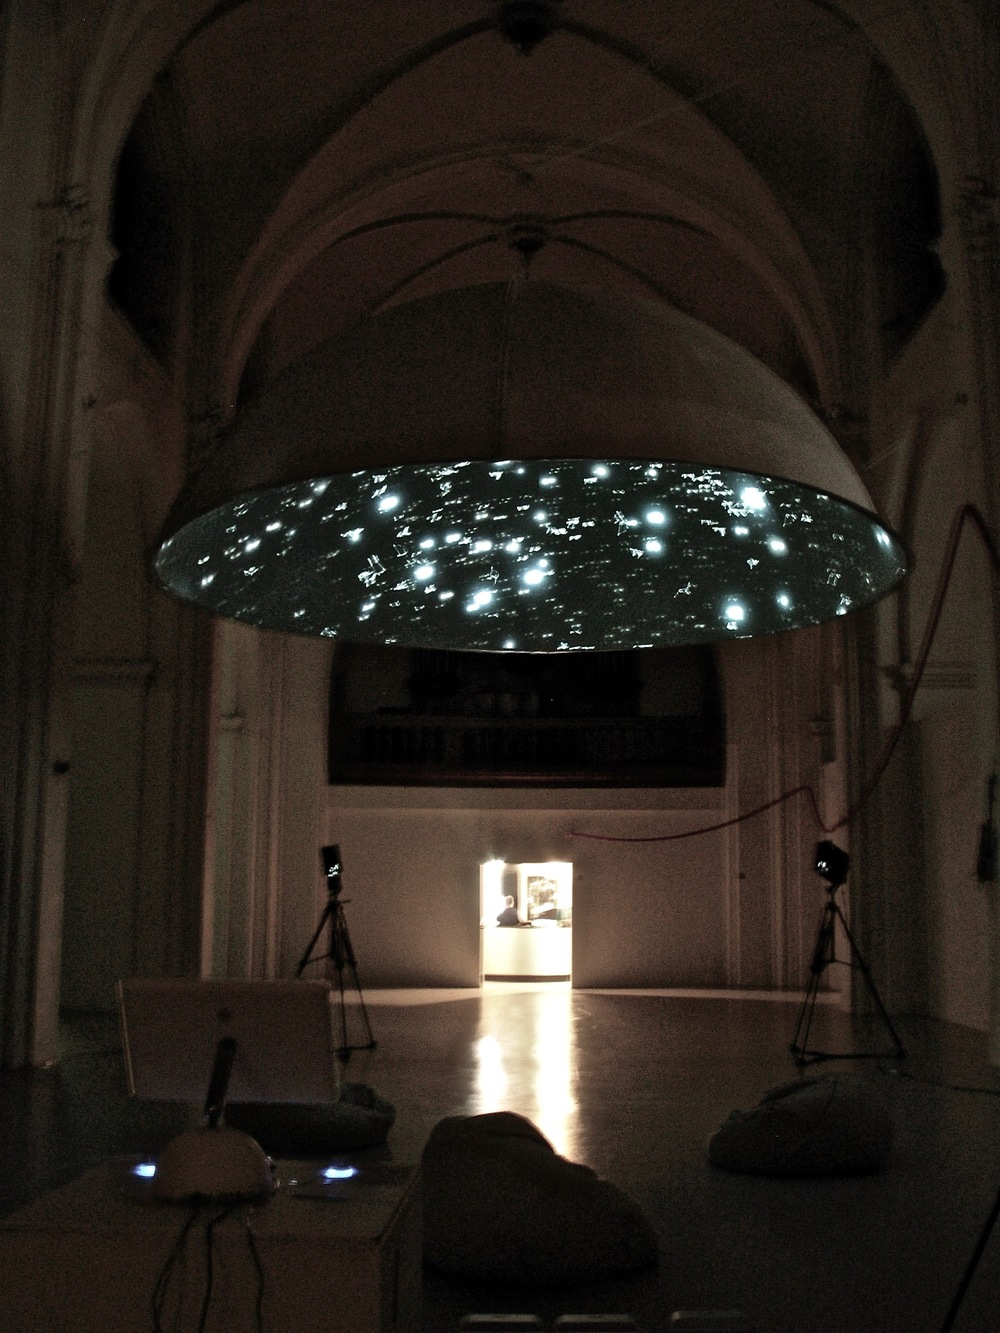 Black Shoals Stock market planetarium by Lise Autogena and Joshua Portway, at Nikolaj Copenhagen Contemporary Art Centre, Denmark, in 2004.  (Photo by Lise Autogena)